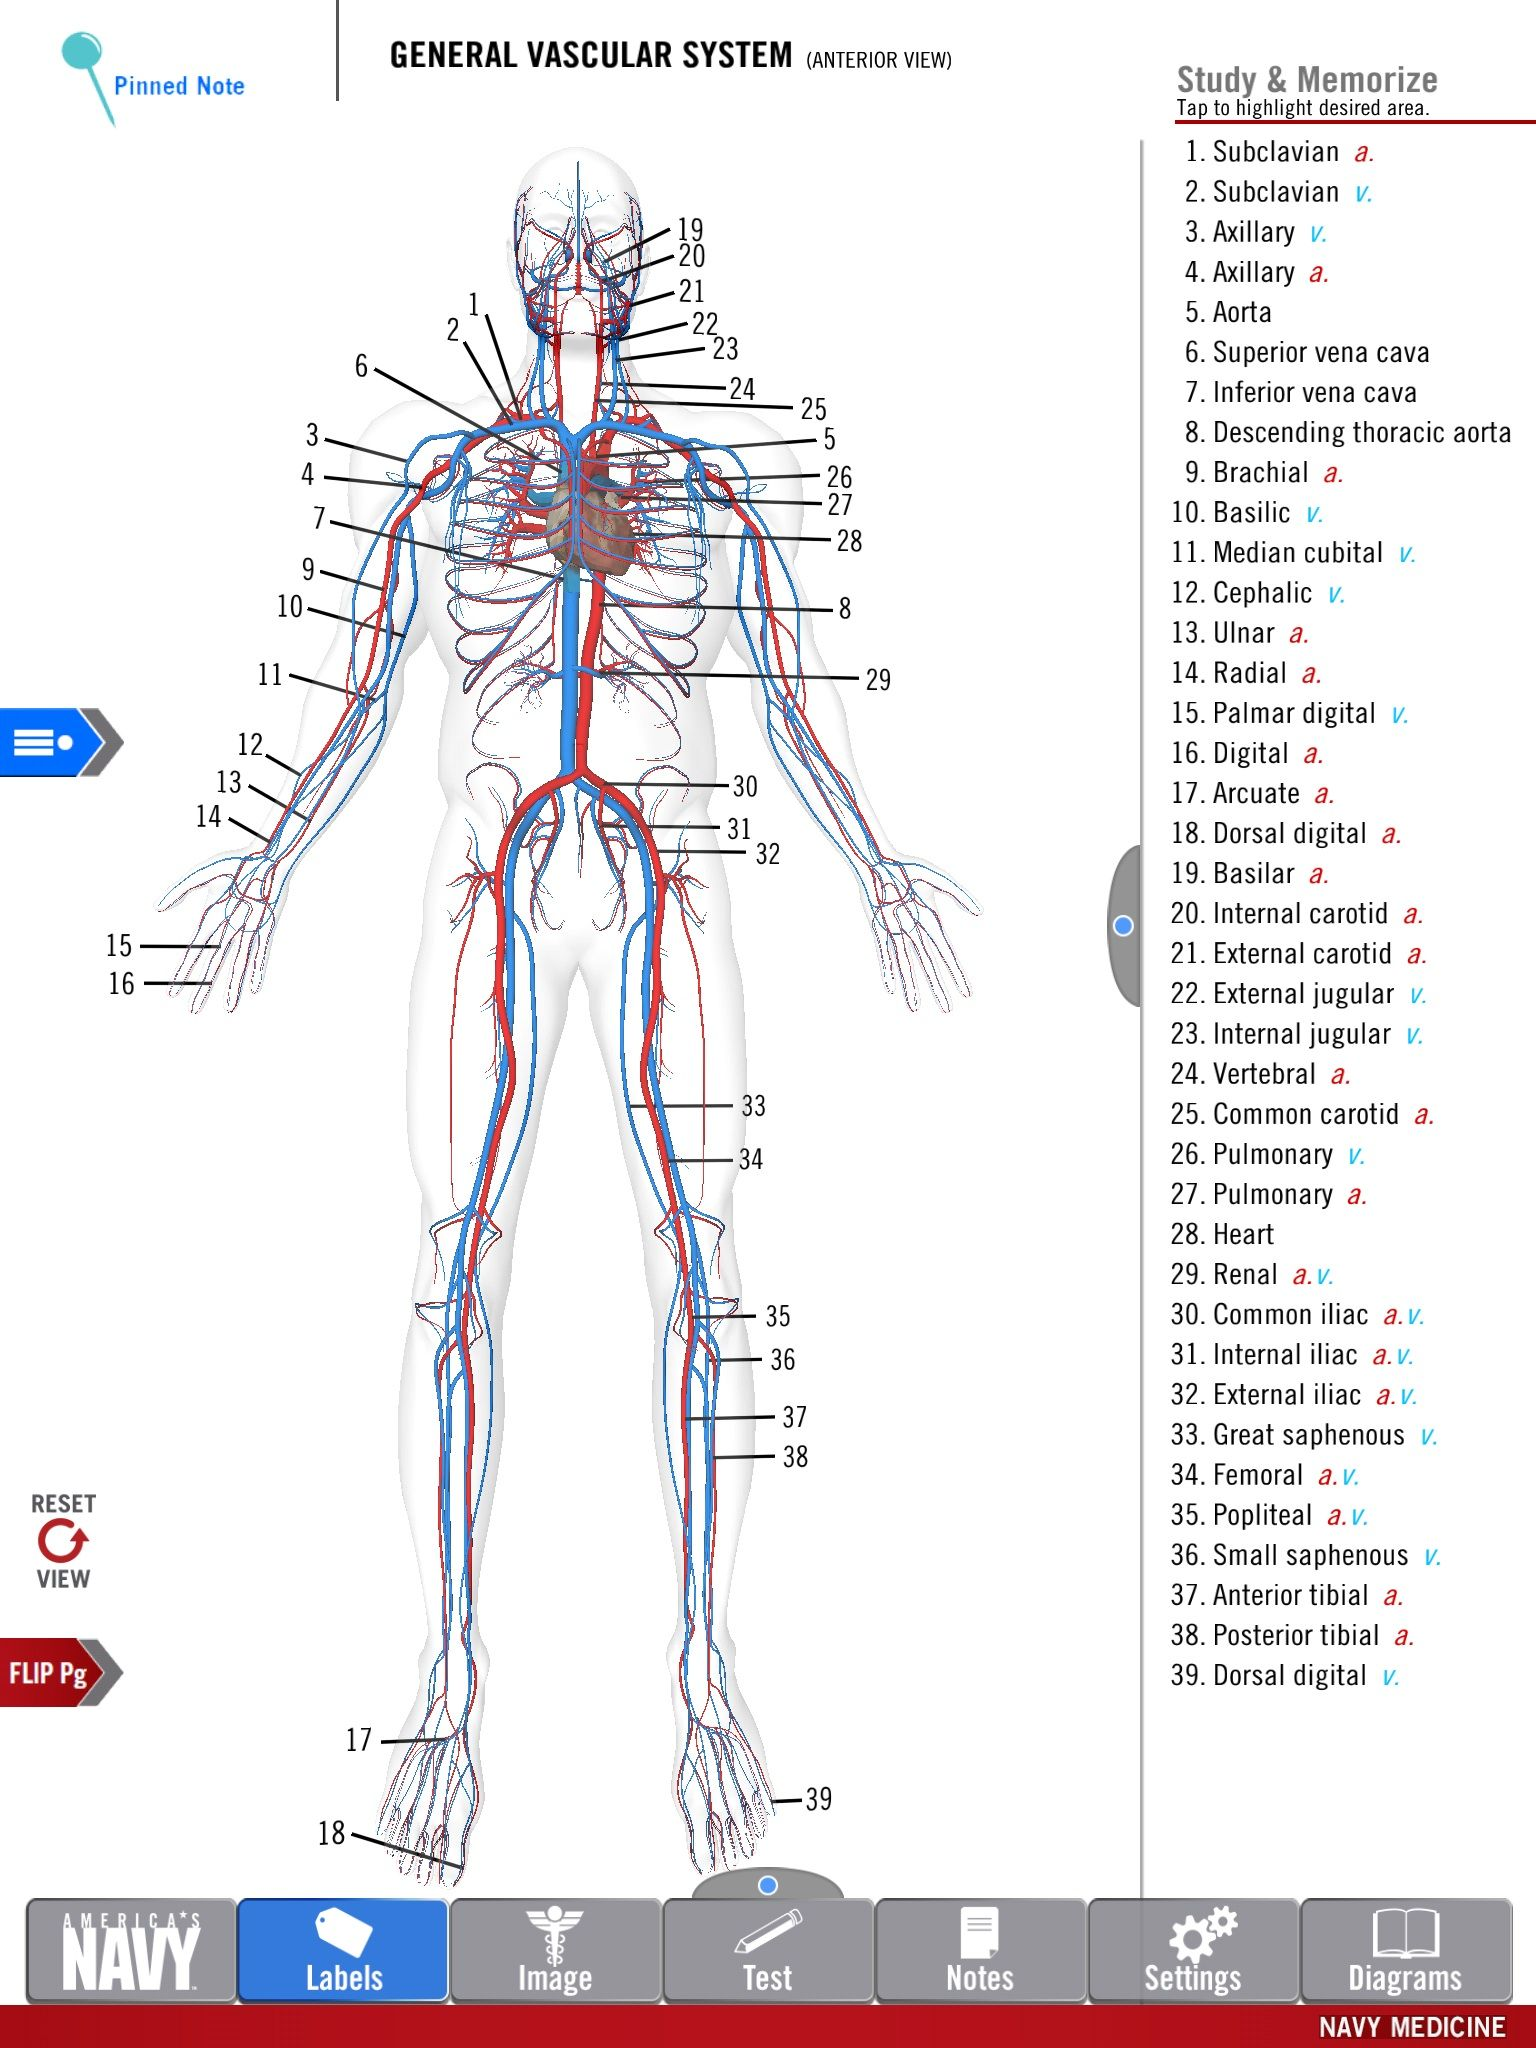 medium resolution of diagram of the general vascular system from the free anatomy study guide app by america s navy includes high res 3 d diagrams